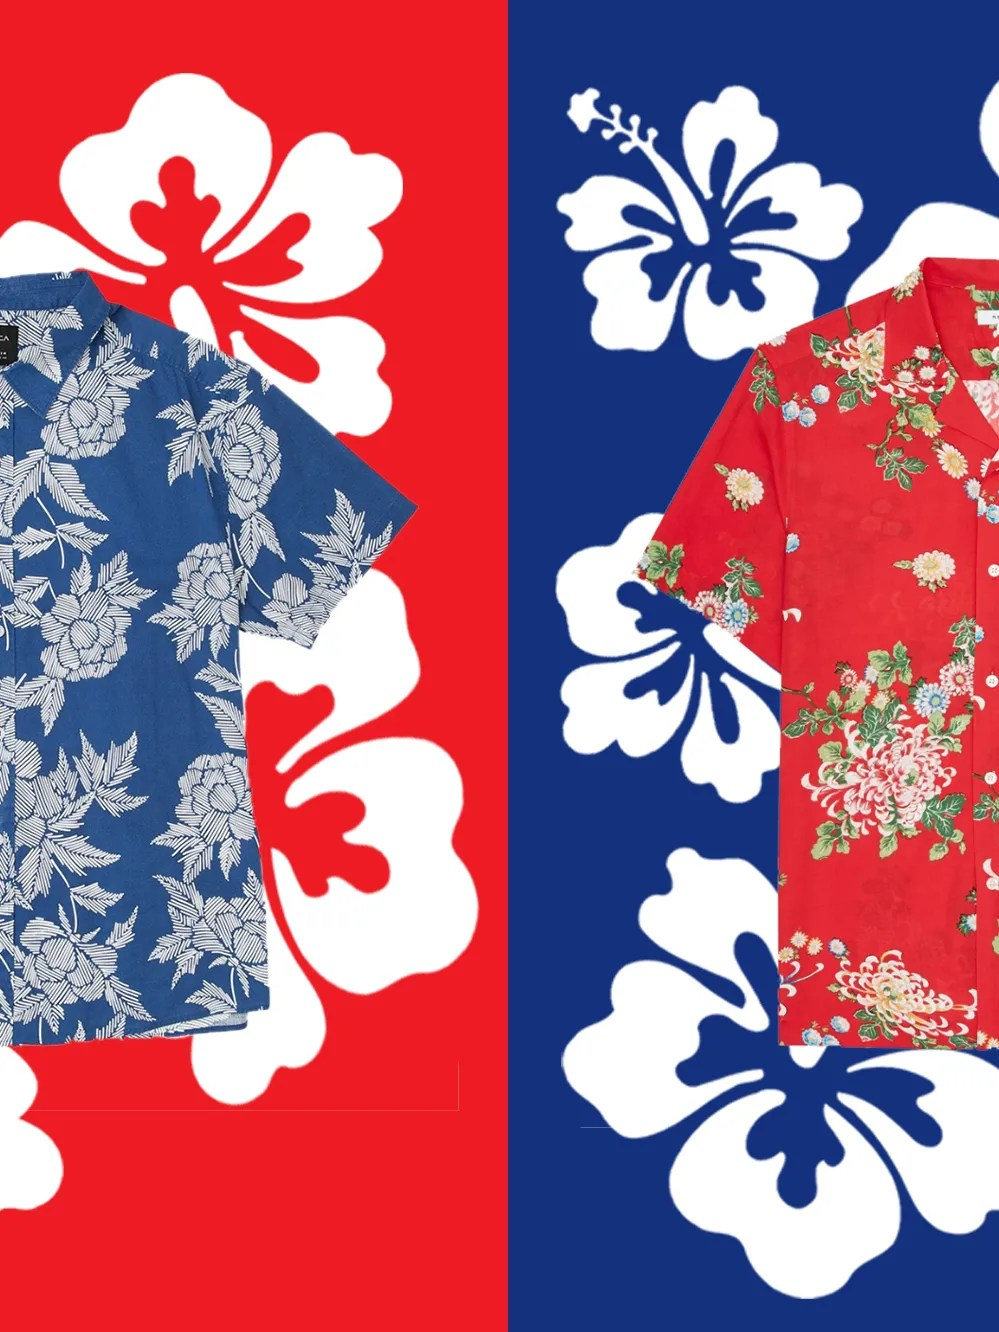 Hawaiian Shirt Patterns : hawaiian, shirt, patterns, Hawaiian, Print, Shirt, Summer